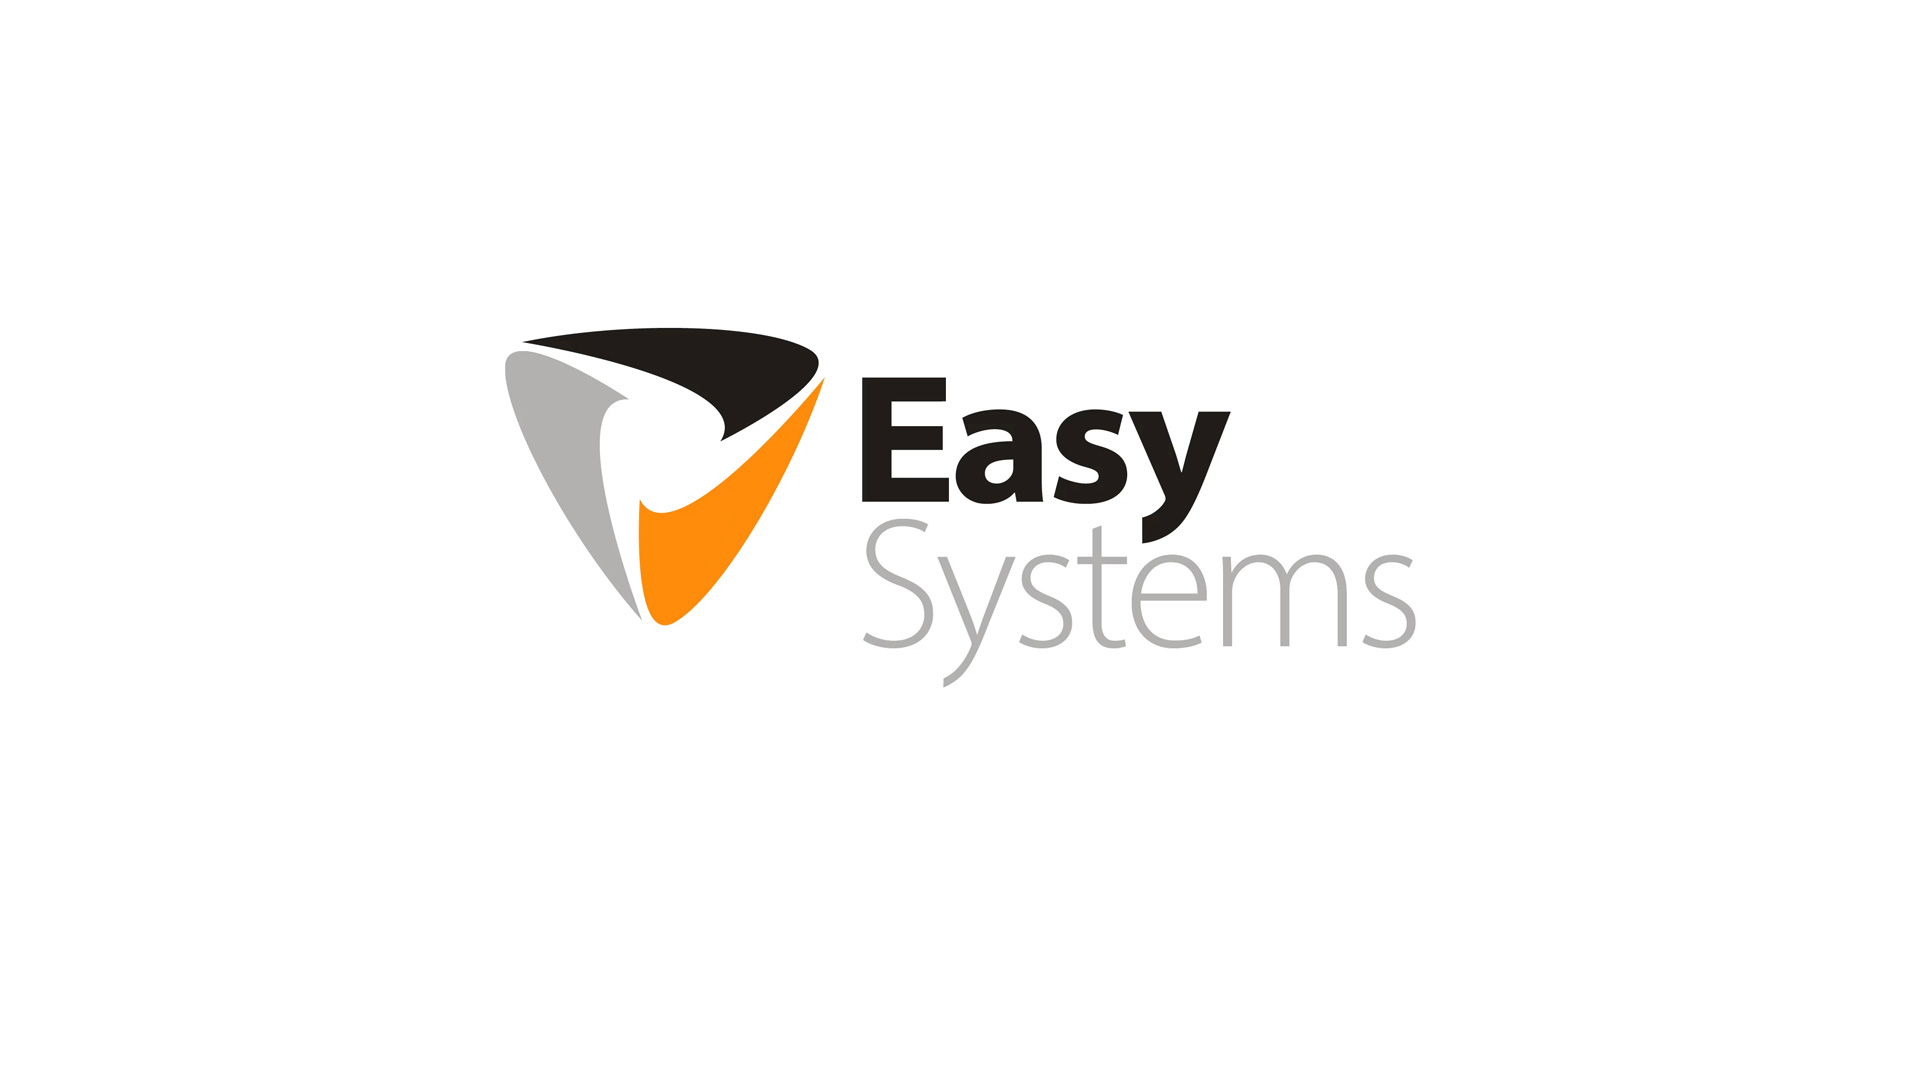 Logo Easy Systems - ZoomWorks - JPEG